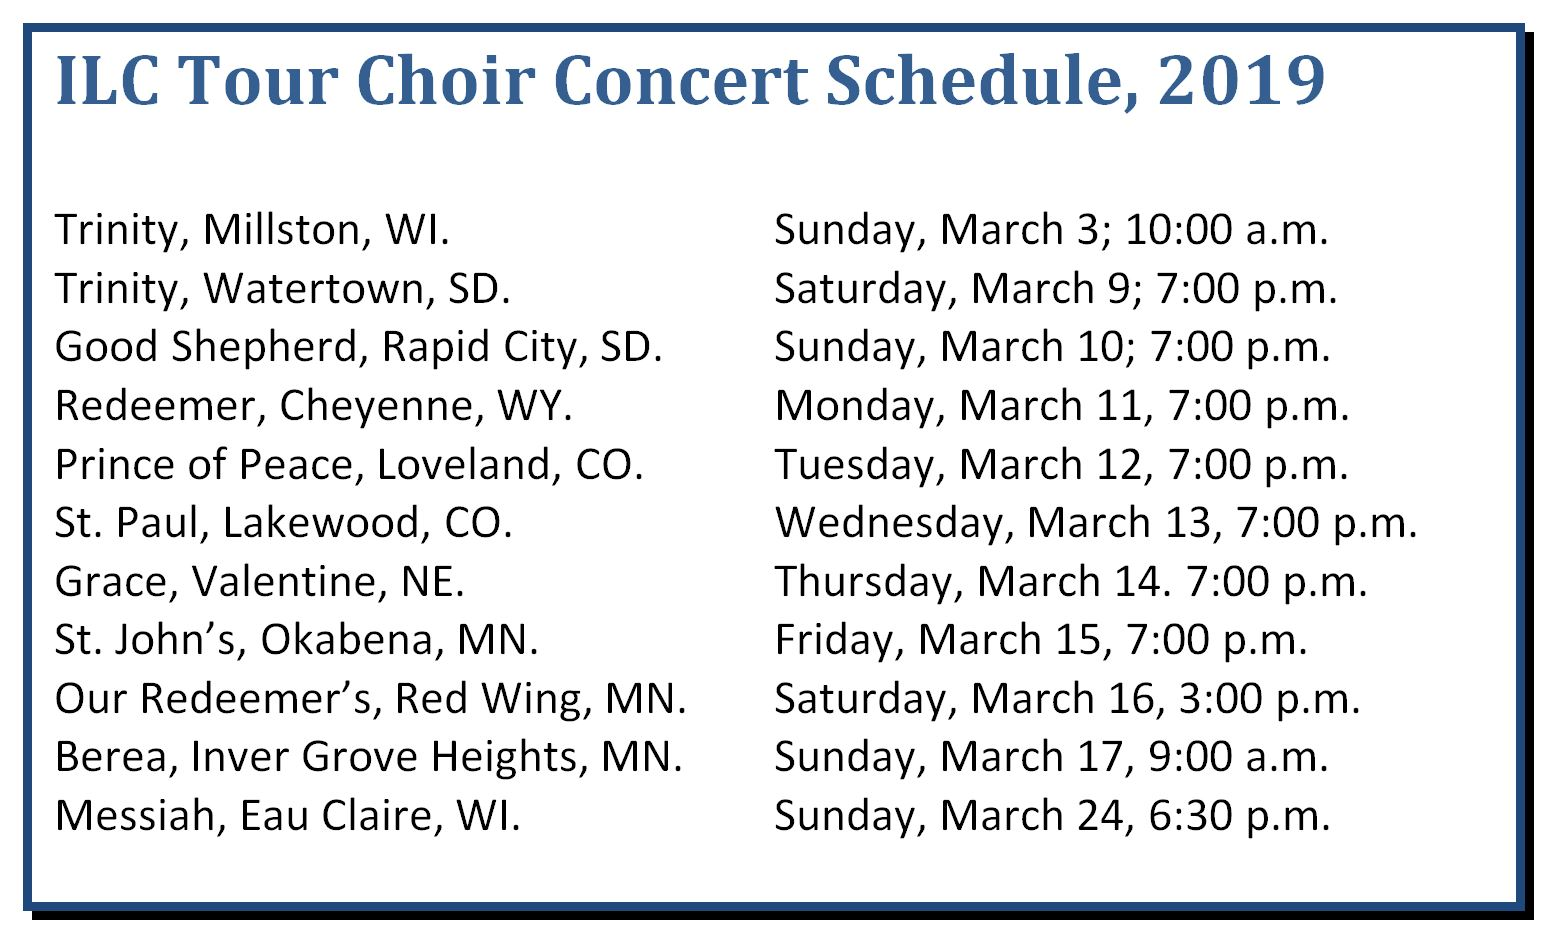 2019 ILC Tour Choir Schedule